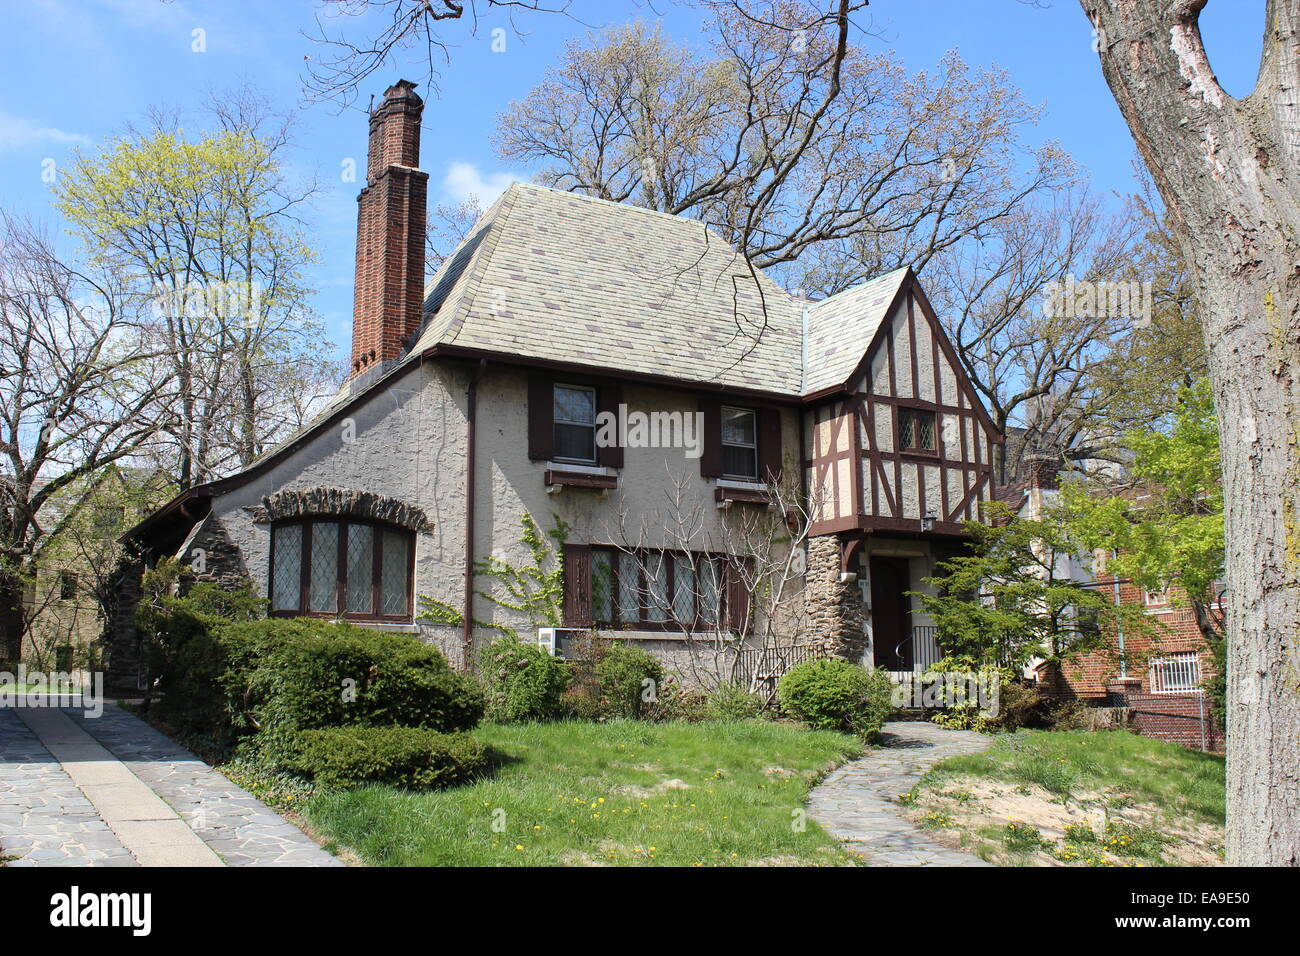 Neo tudor house kew gardens queens new york stock image